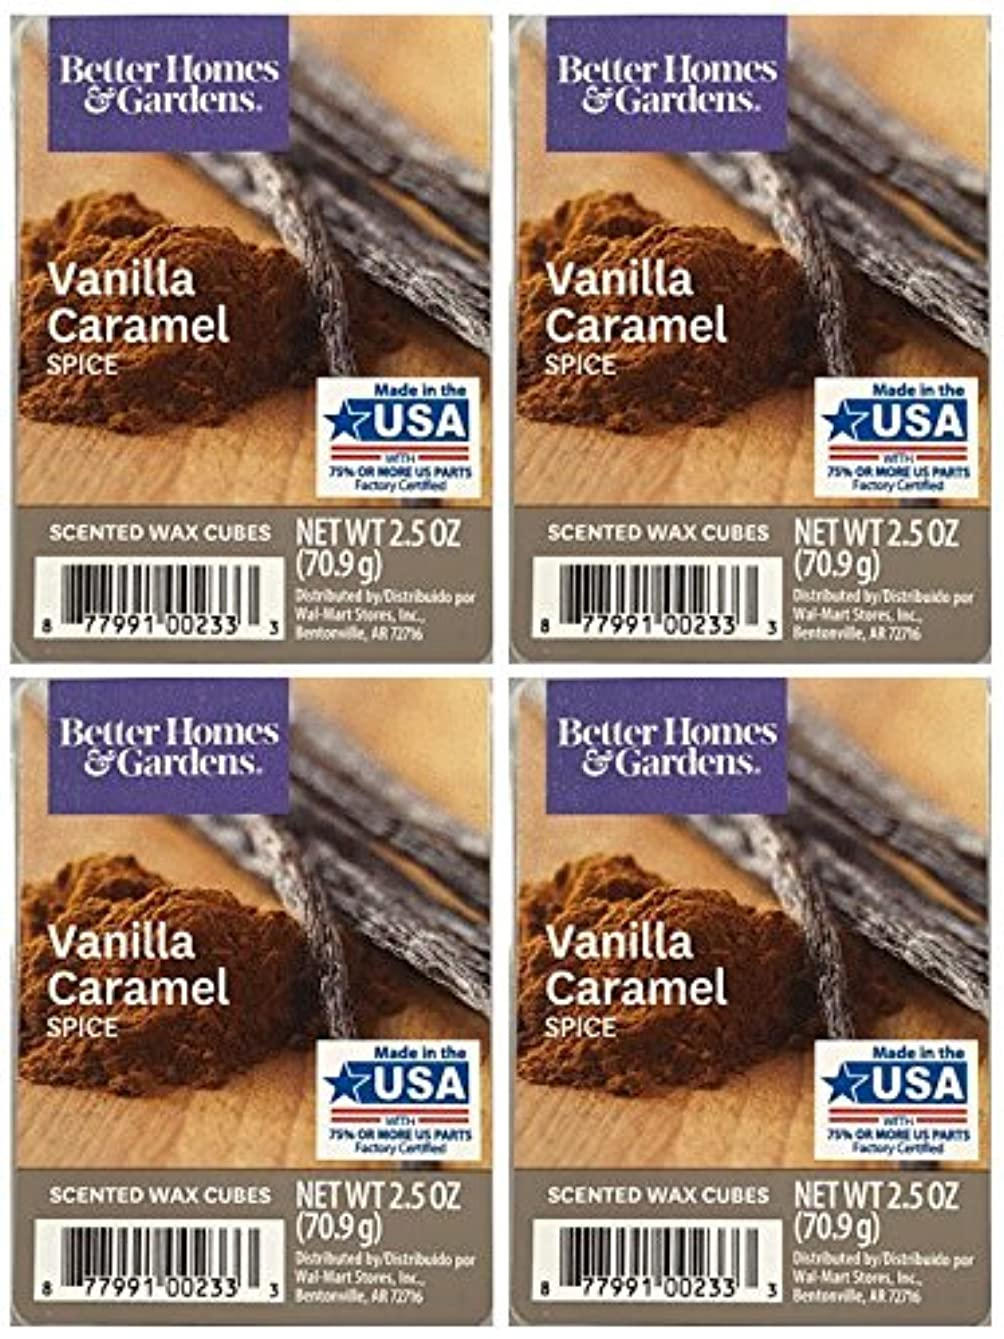 Better Homes and Gardens Vanilla Caramel Spice Wax Cubes - 4-Pack mxnndo548481